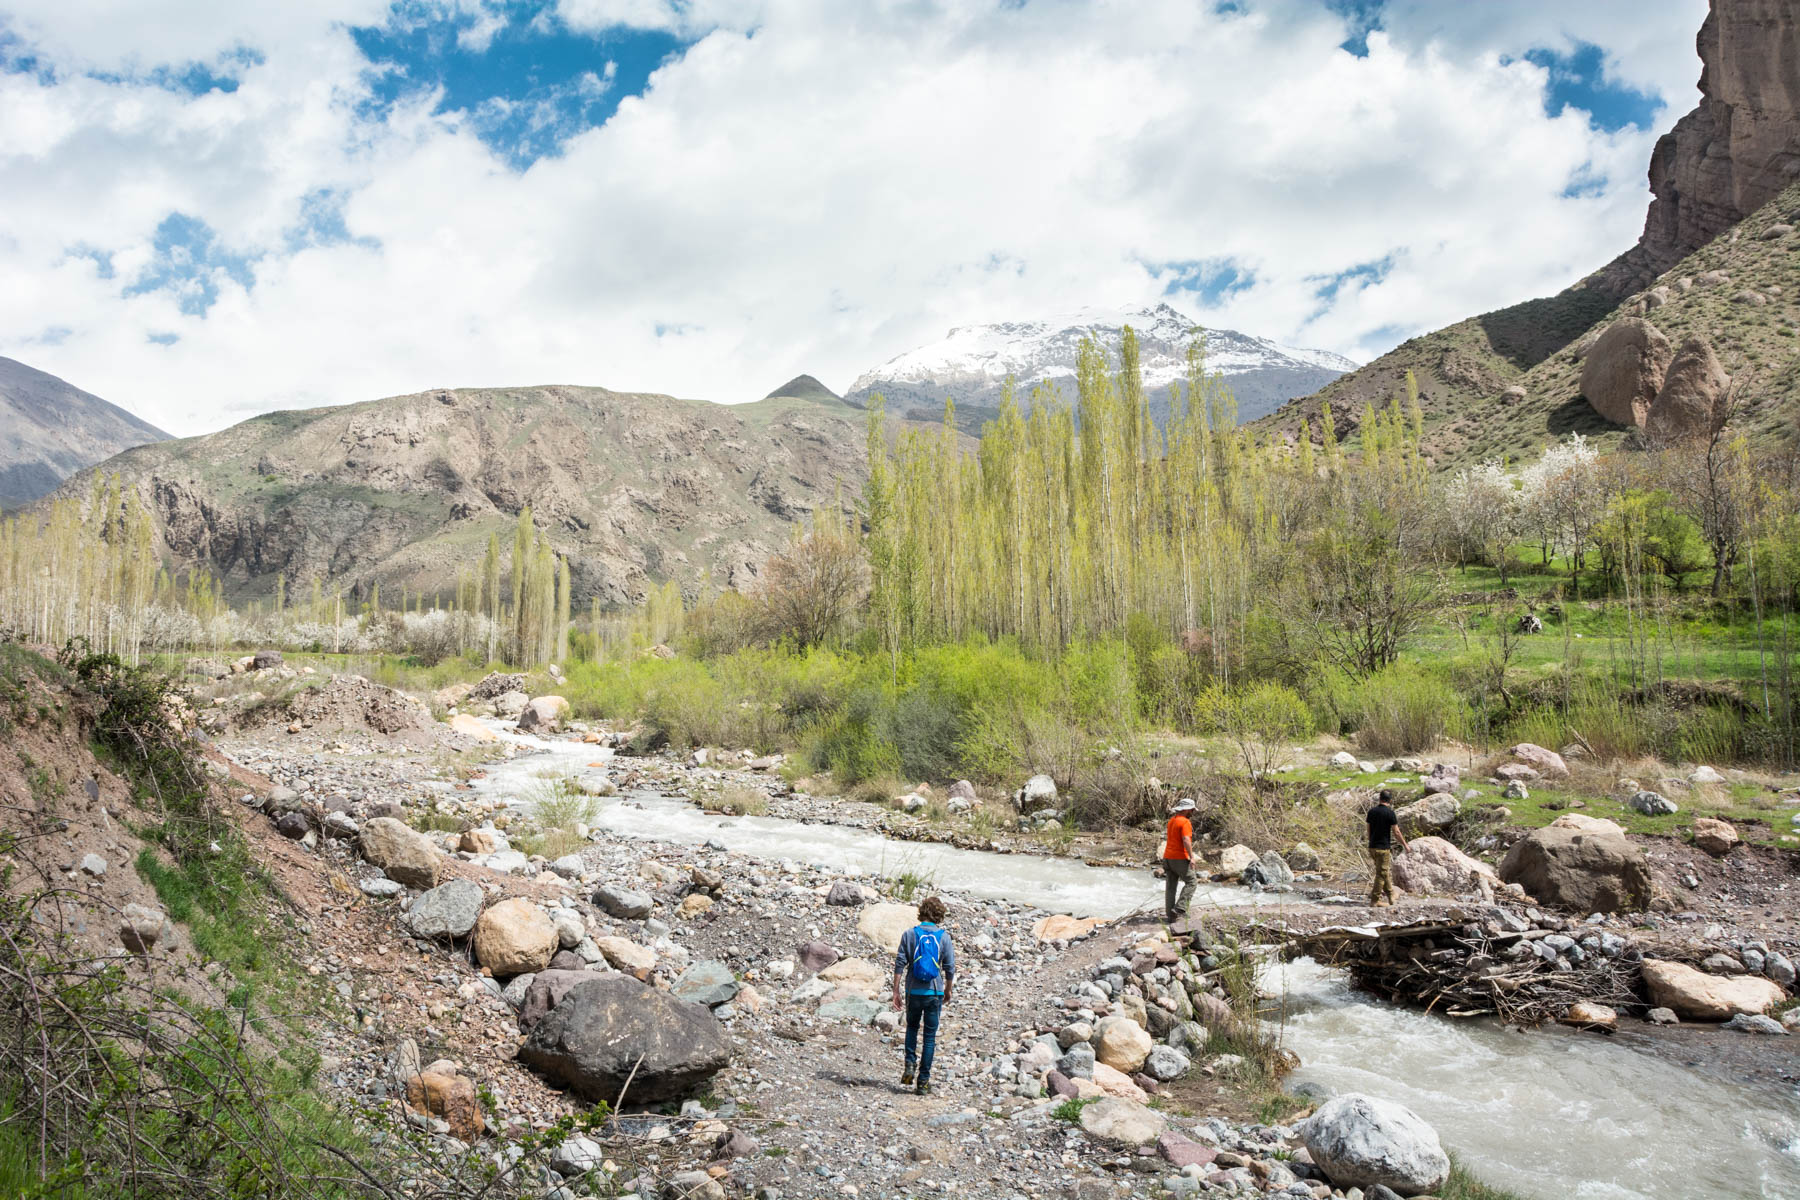 Two men crossing a stream to enter gorges in the Alamut Valley in Iran